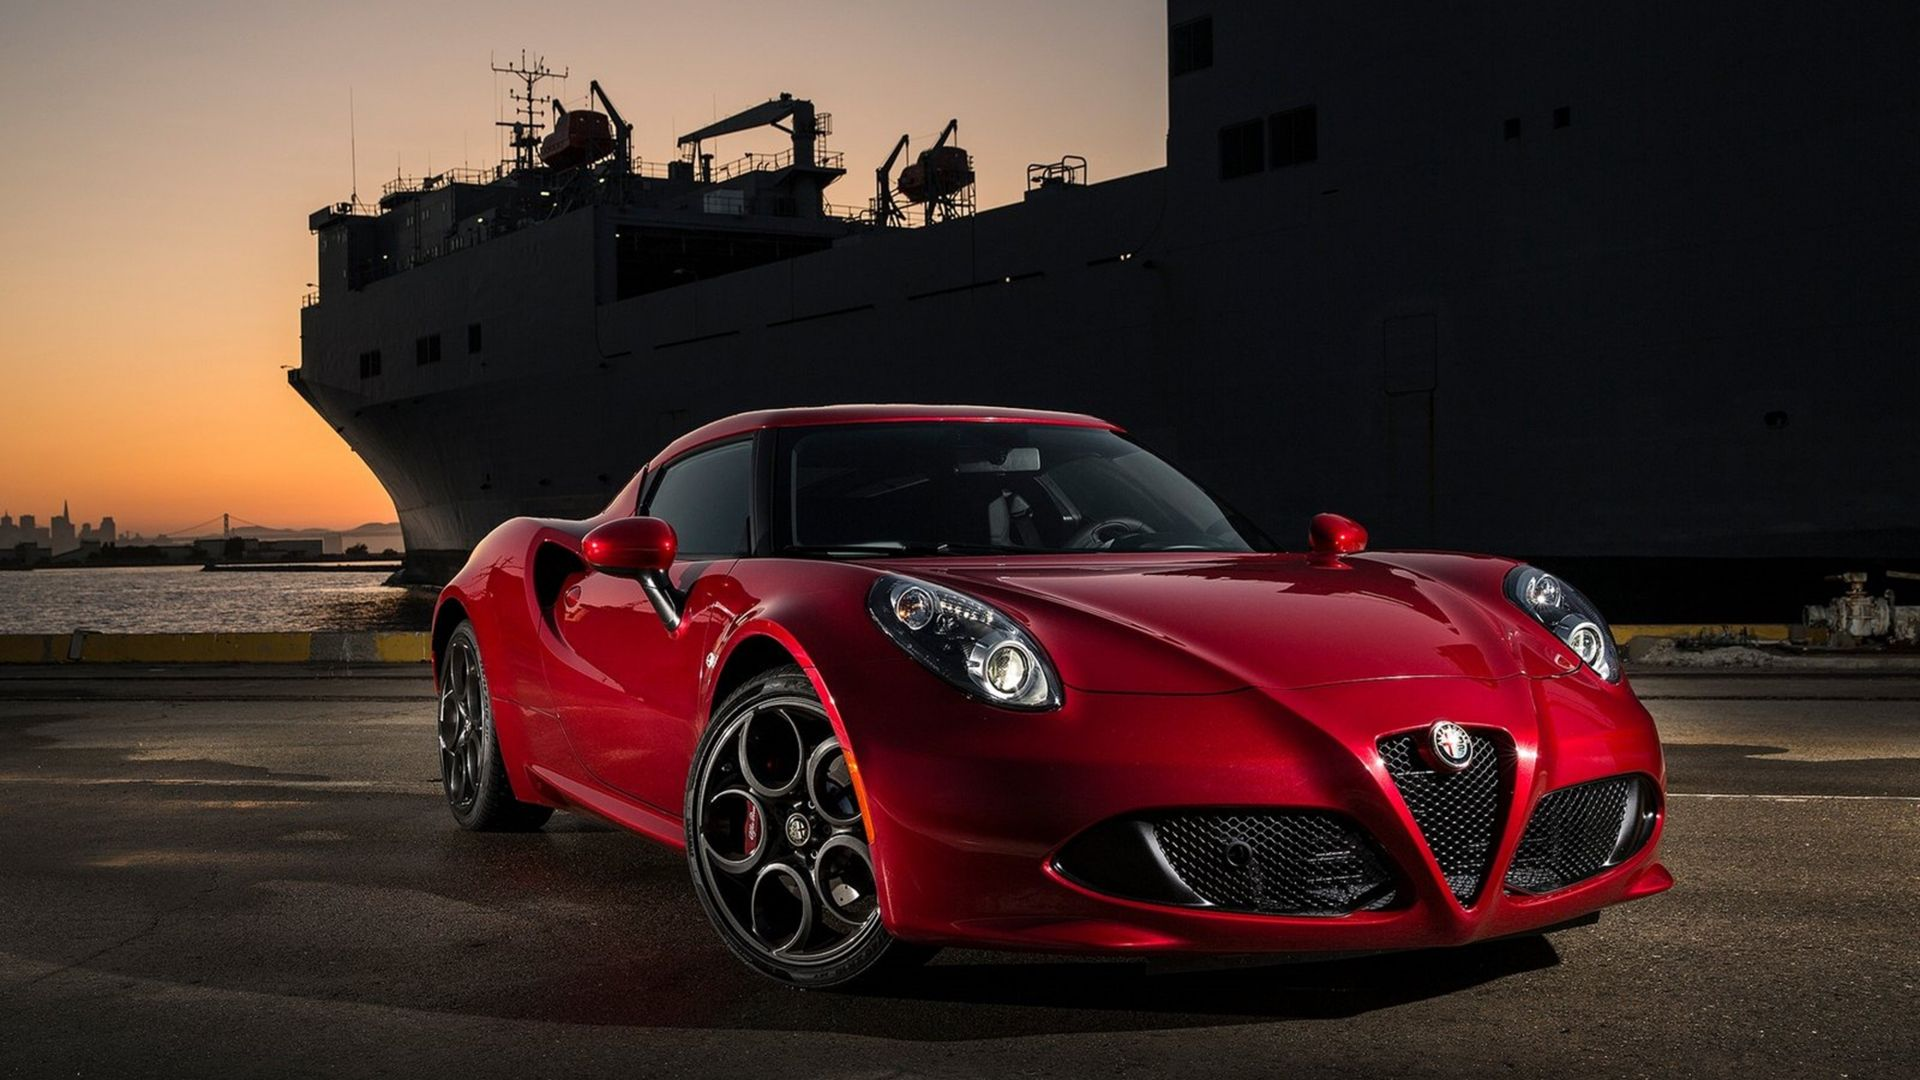 Alfa romeo 4c, coupe, sportcar, red. (horizontal)